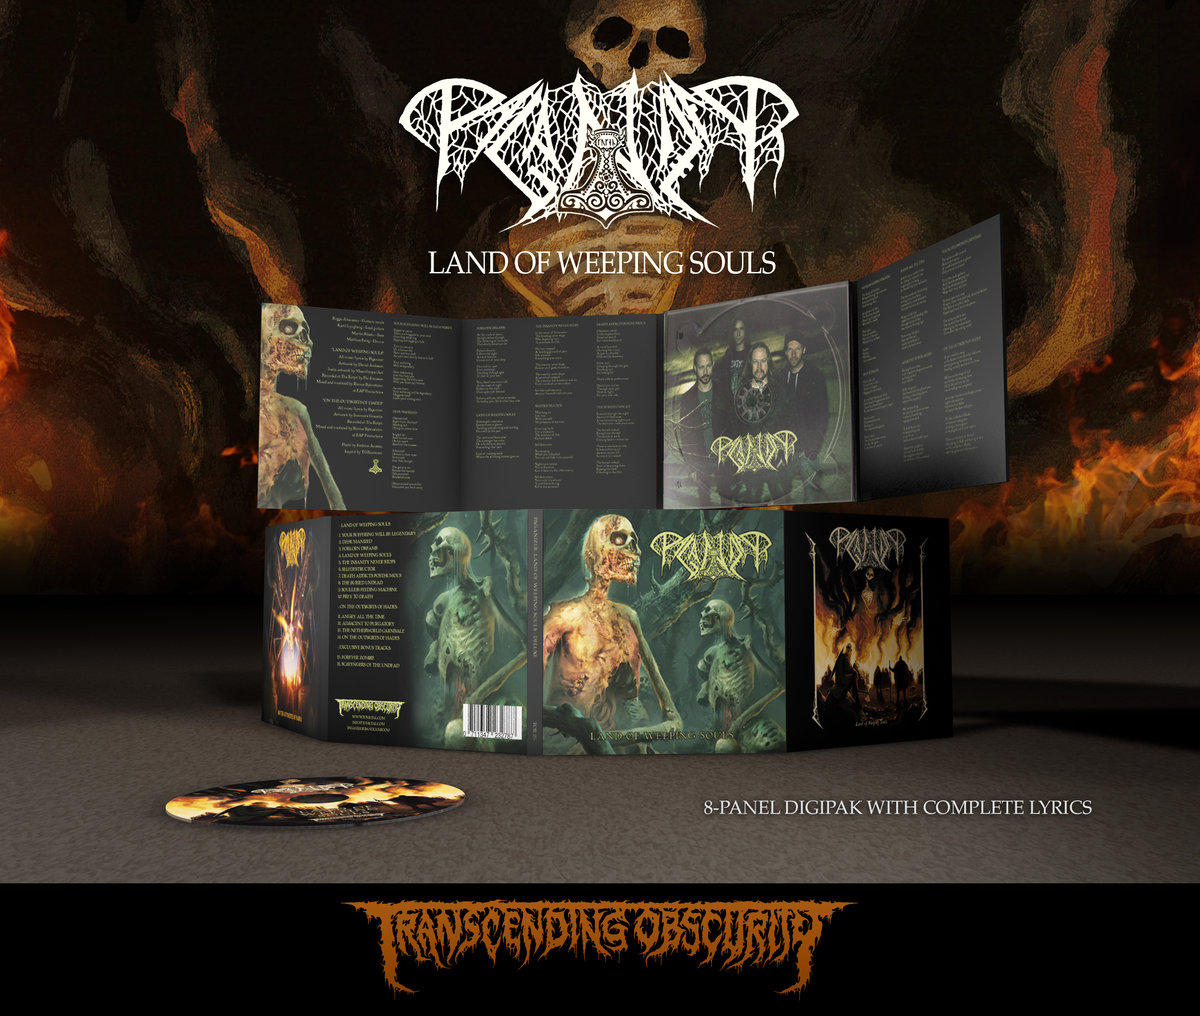 PAGANIZER (Sweden) - Land of Weeping Souls 8-Panel Digipak CD with Bonus EP + Exclusive Songs